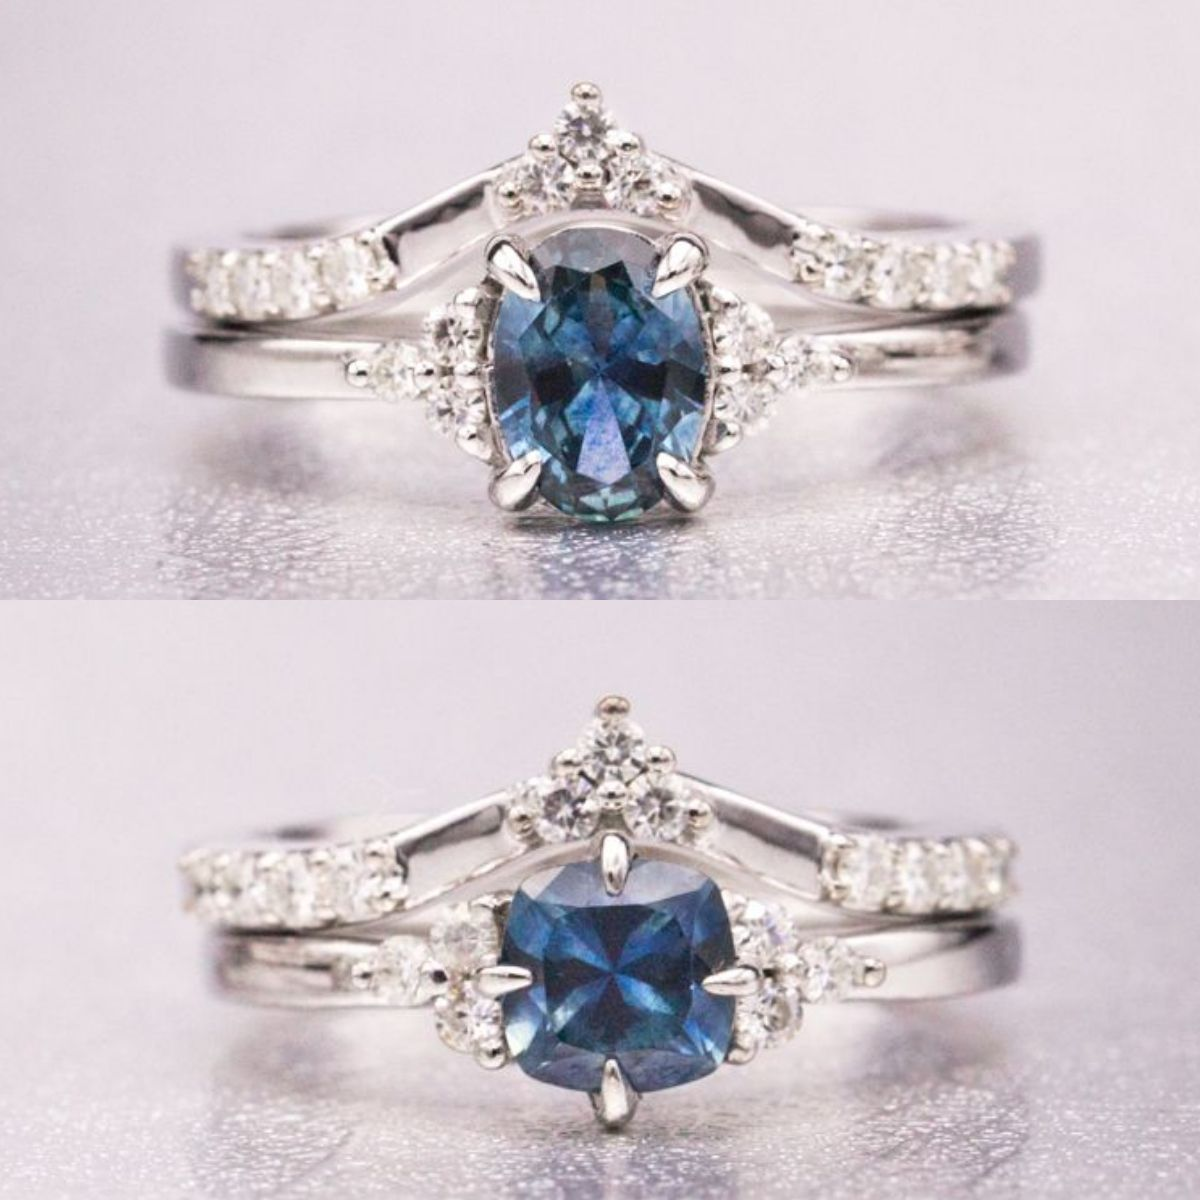 776b1f56e Montana Sapphire The couple mined these sapphires themselves while in  Montana and had them cut into an oval and a cushion. We designed elegant  pairs of ...